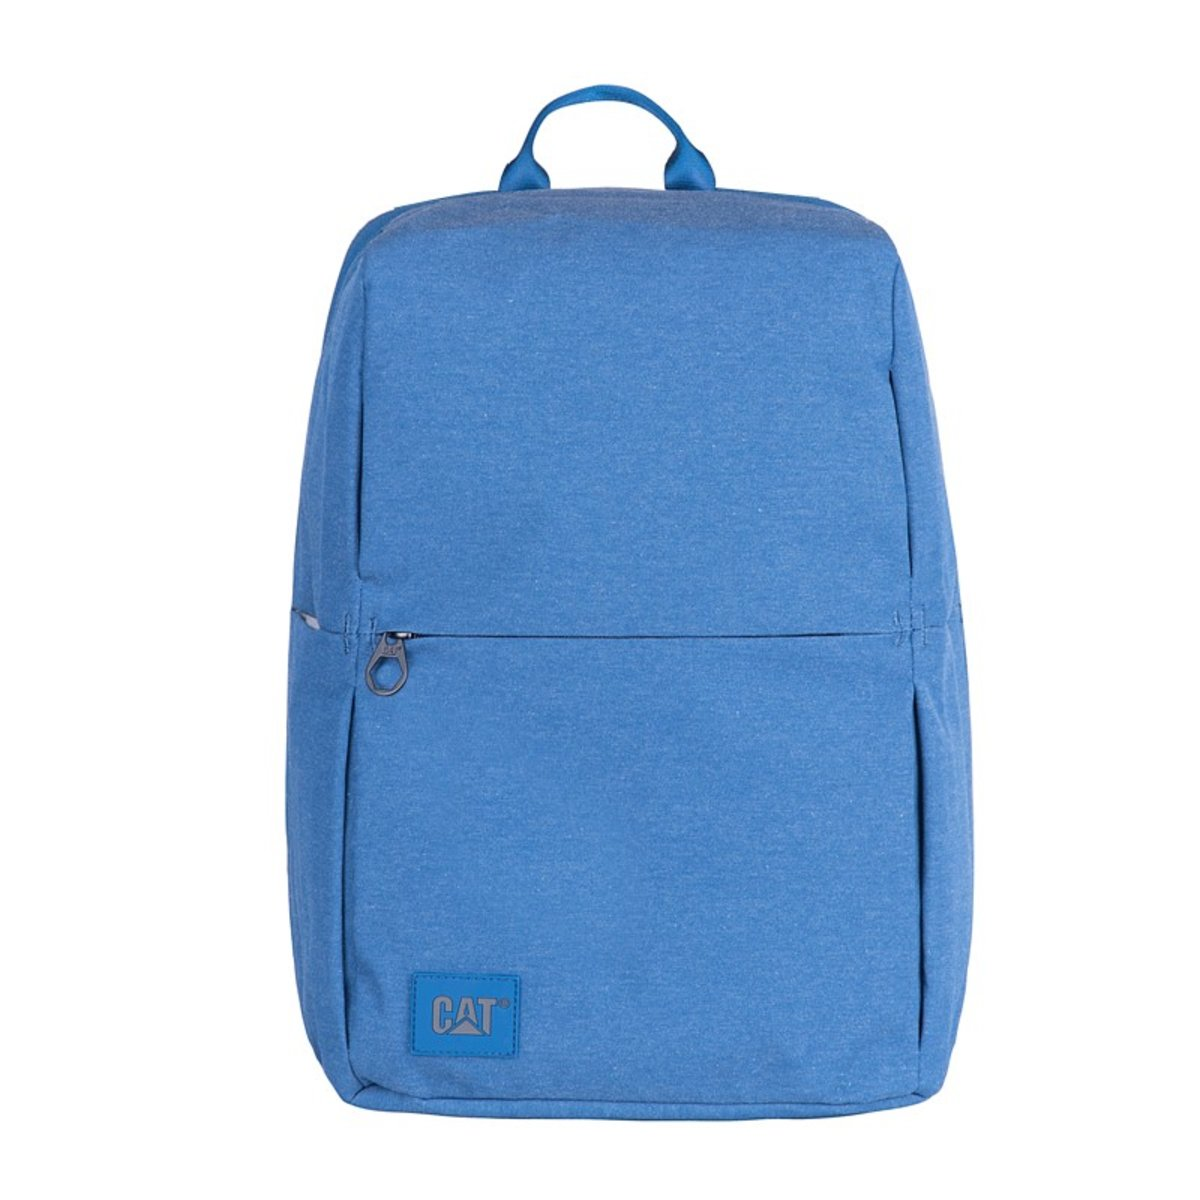 Mono Inno Backpack  - Dark Blue